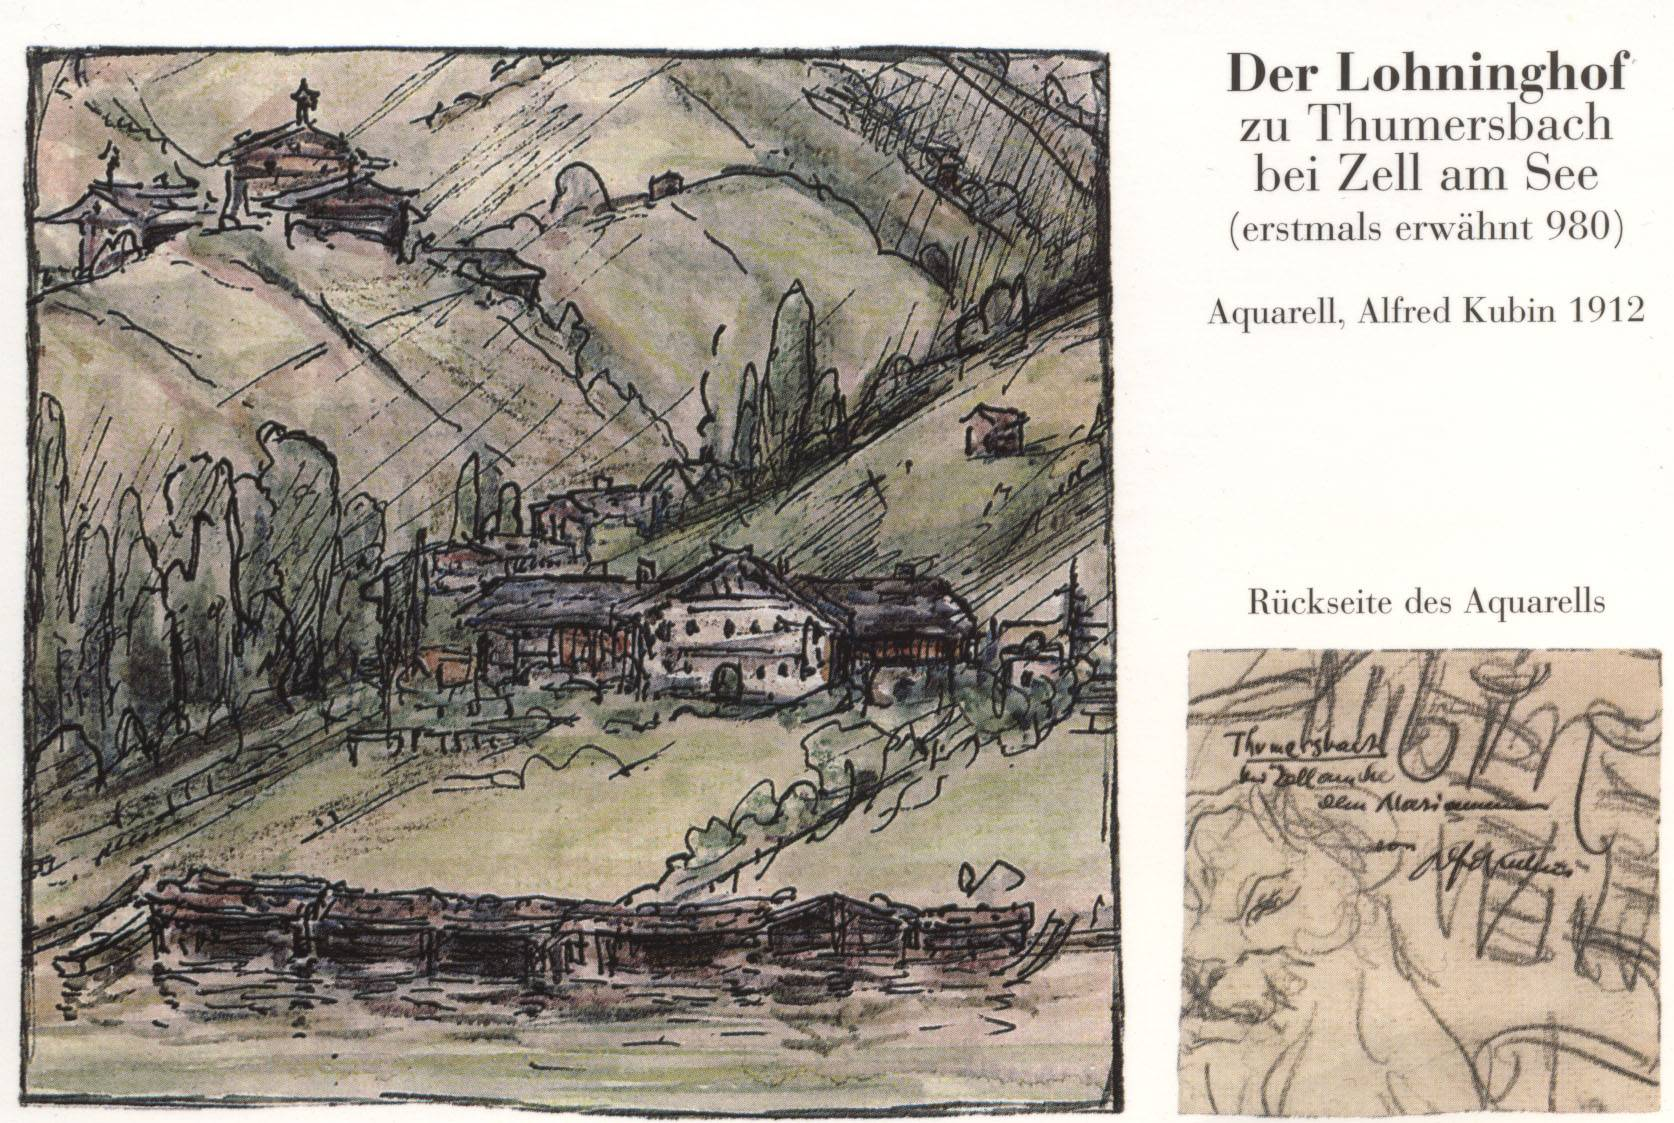 The Lohninghof at Thumersbach  Zell am See of Alfred Kubin